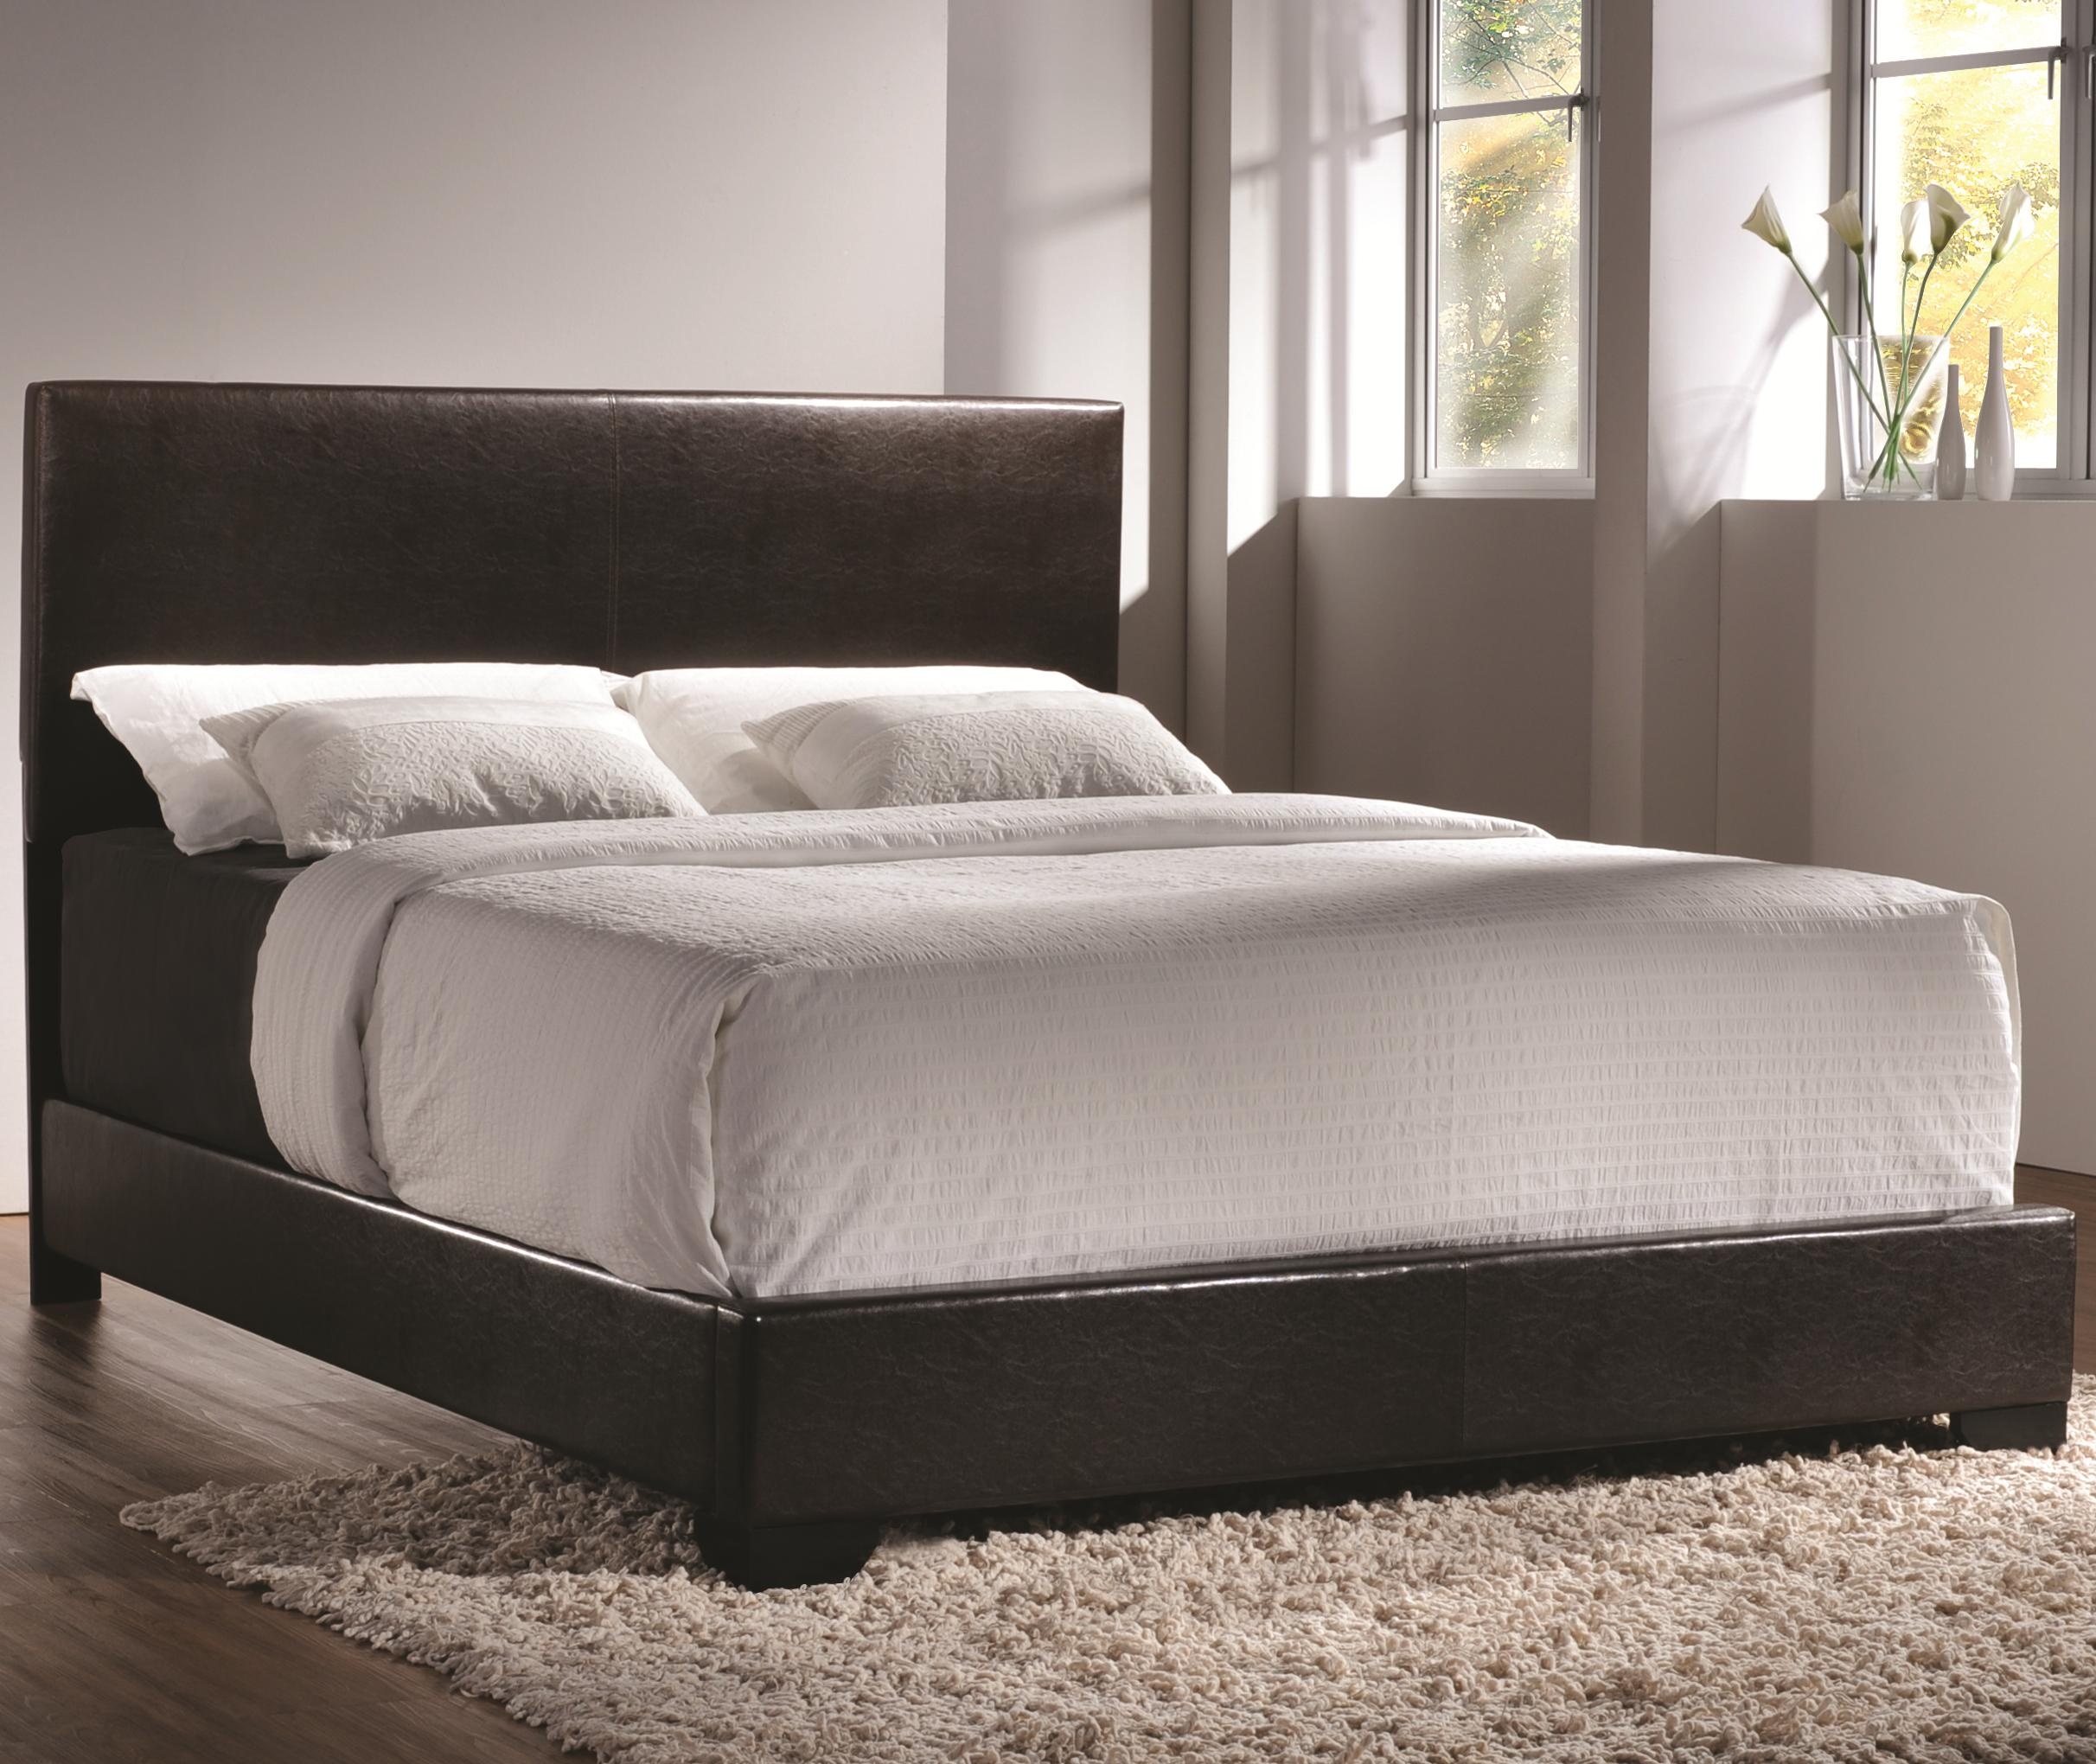 Conner Queen Upholstered Bed by Coaster at Northeast Factory Direct